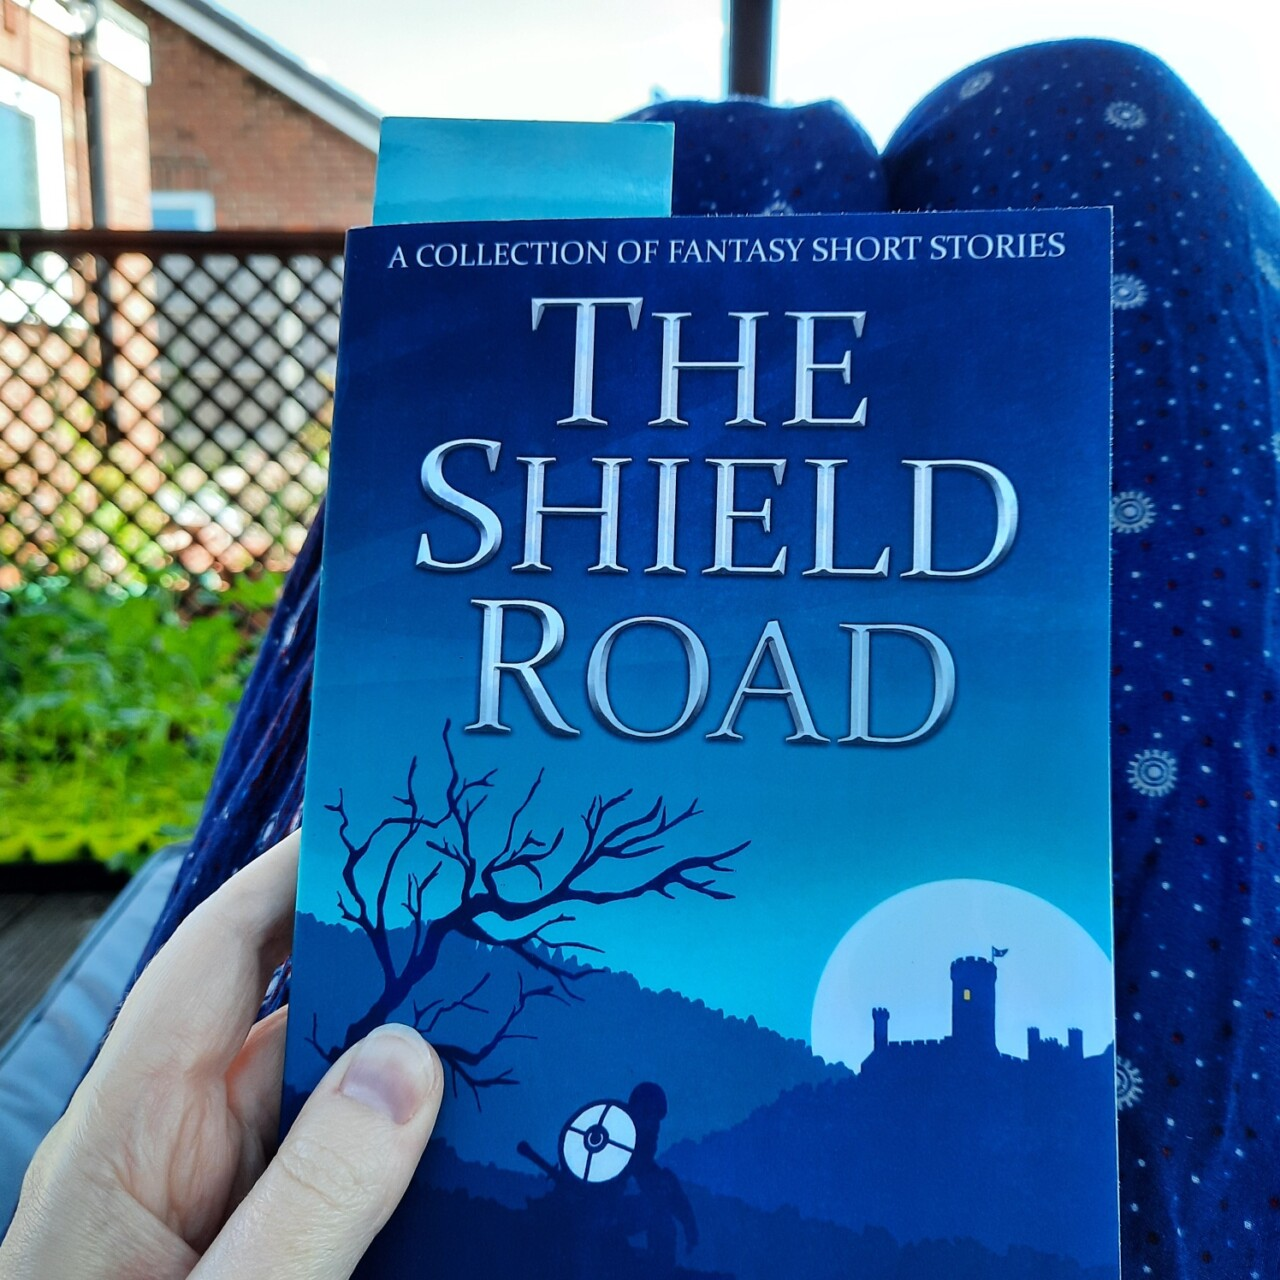 The book The Shield Road by Dewi Hargreaves is being held and rested on my legs as I sit in the garden. The book has a blue cover showing a castle in the distance in front of a full moon. In the foreground the silhouette of a character with a shield on their back crouches under a tree with bare branches.